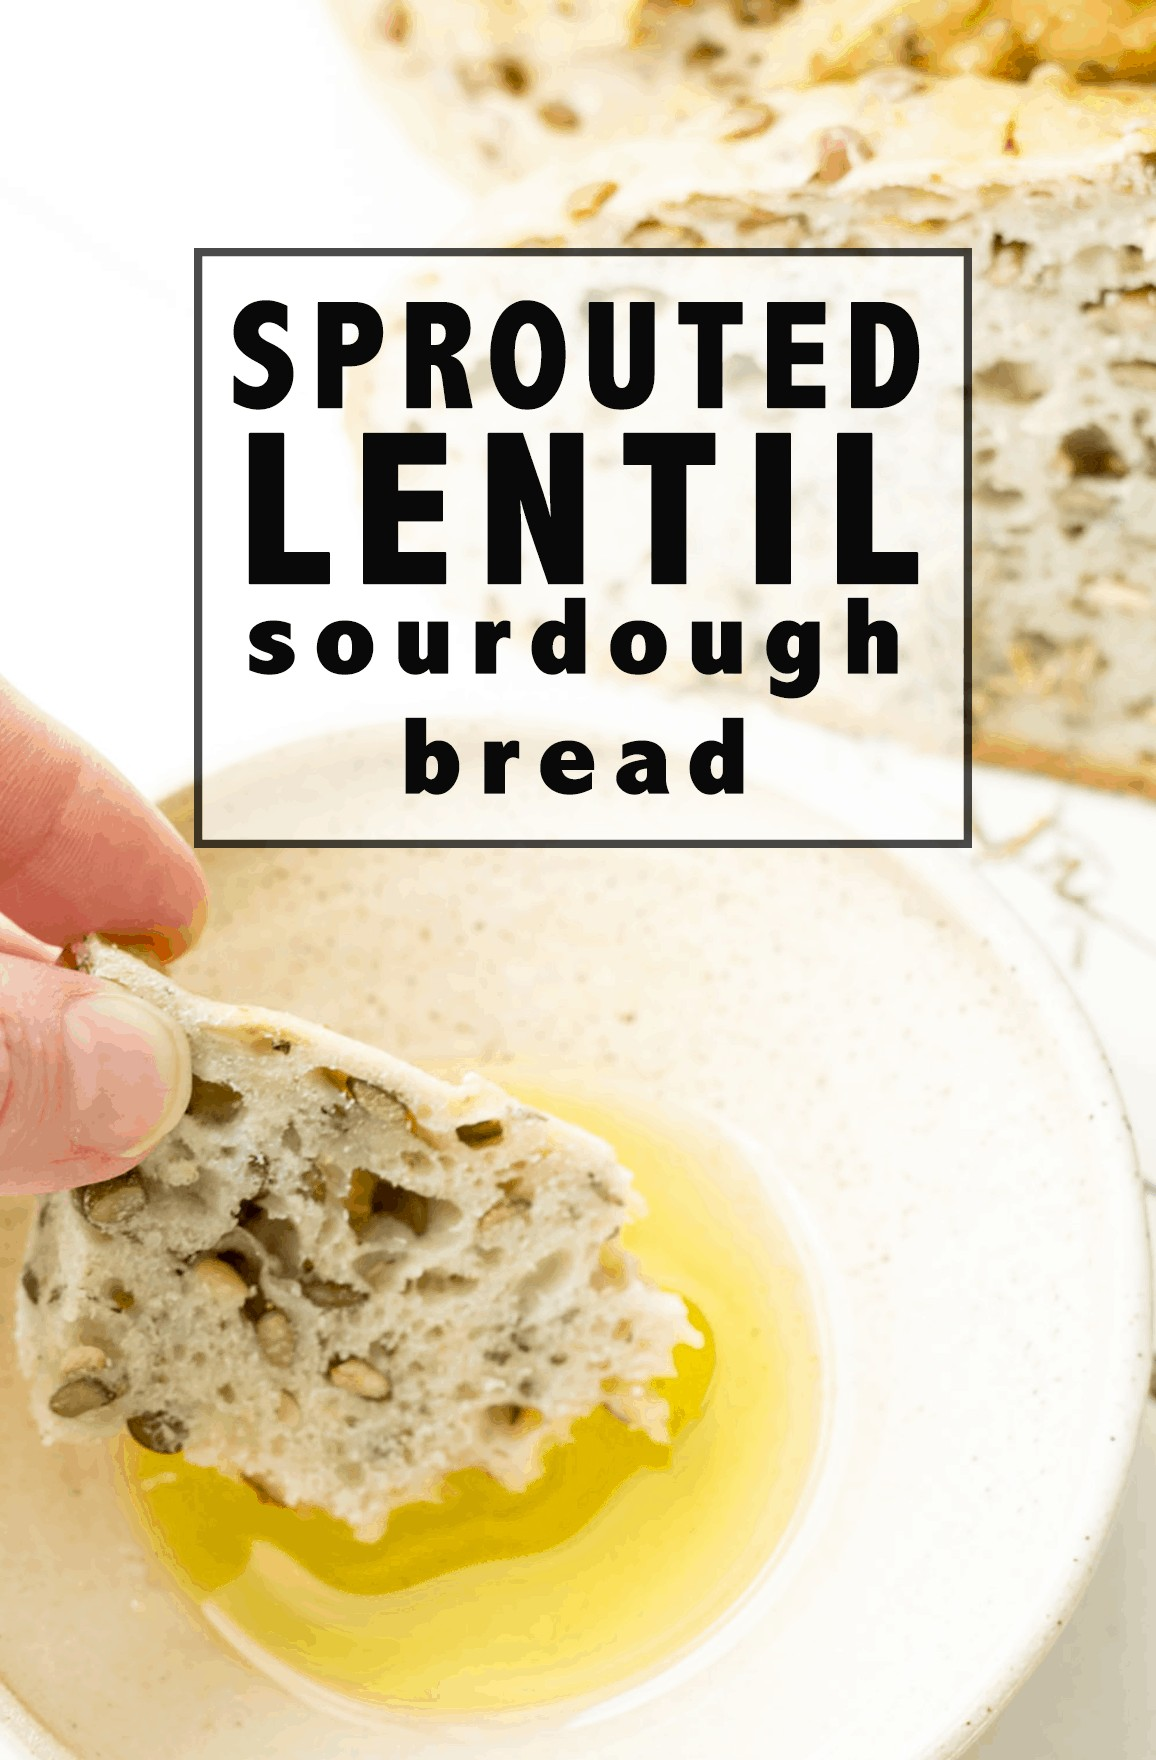 Sprouted Lentil Sourdough Bread: full of aromatic herbs and healthy ingredients, this bread is food for your soul and body!